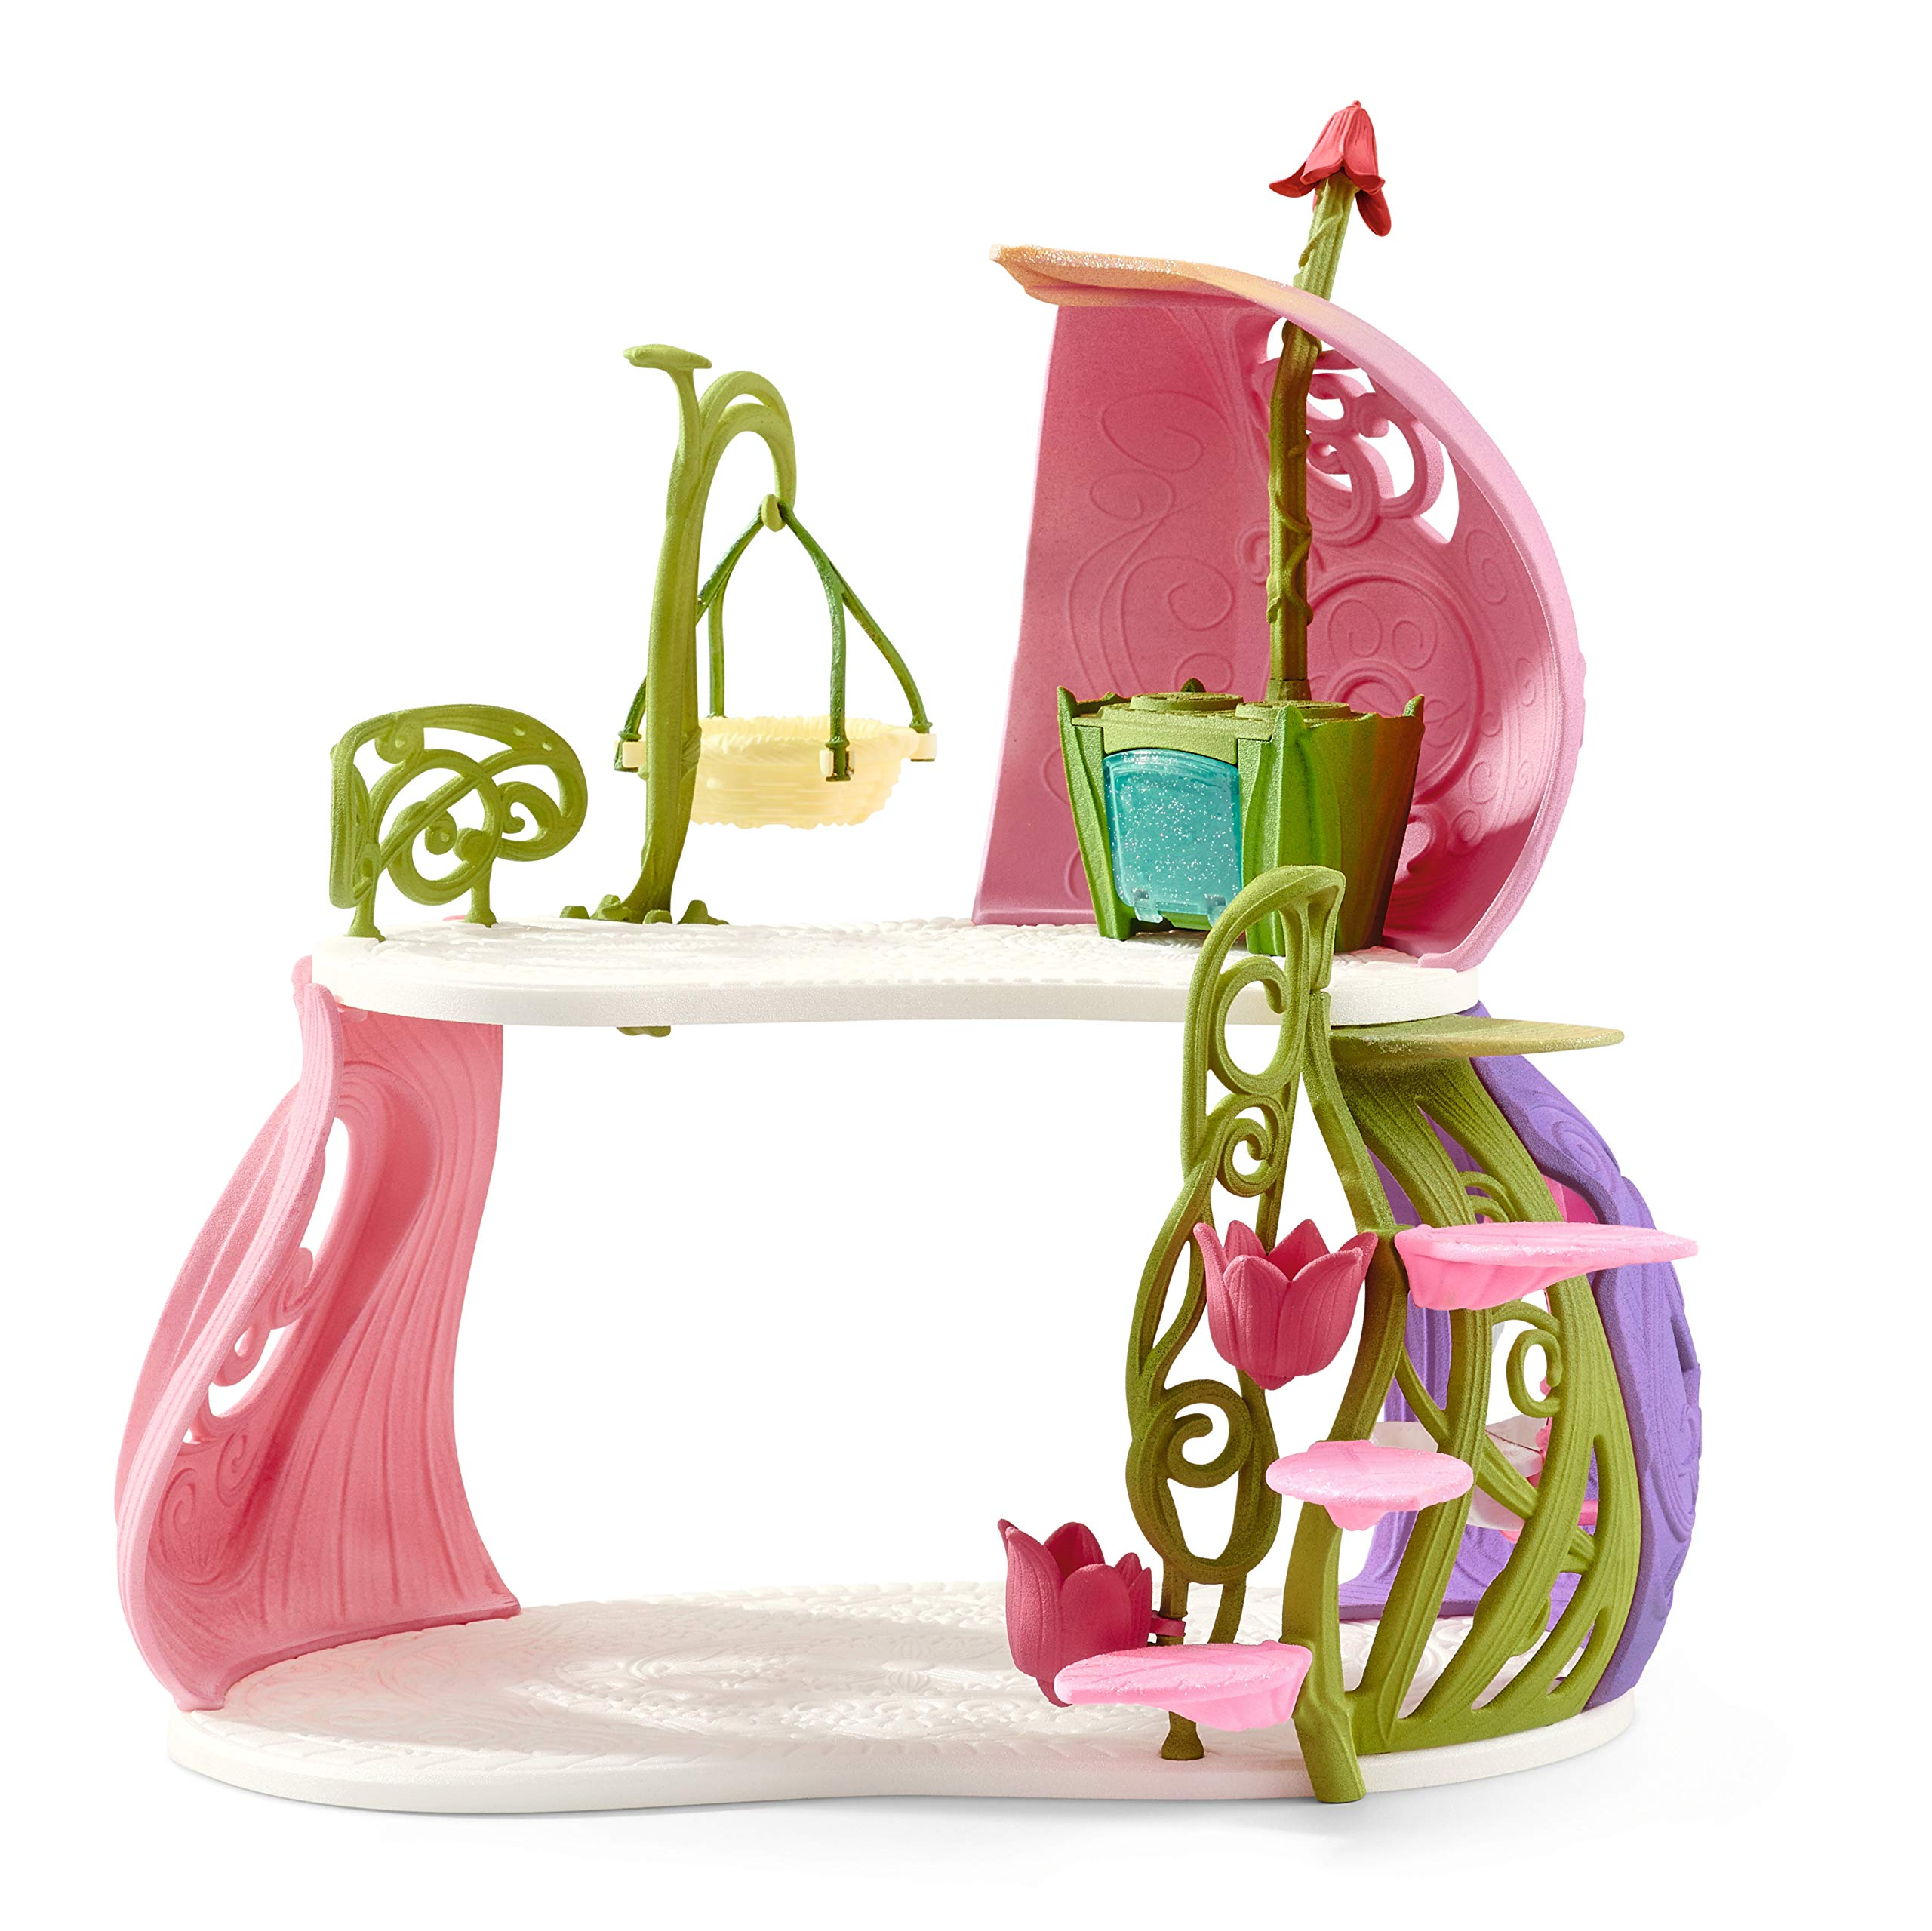 Schleich Glittering Flower House with Unicorns, Lake and Stable, Multicolor by Schleich (Image #7)